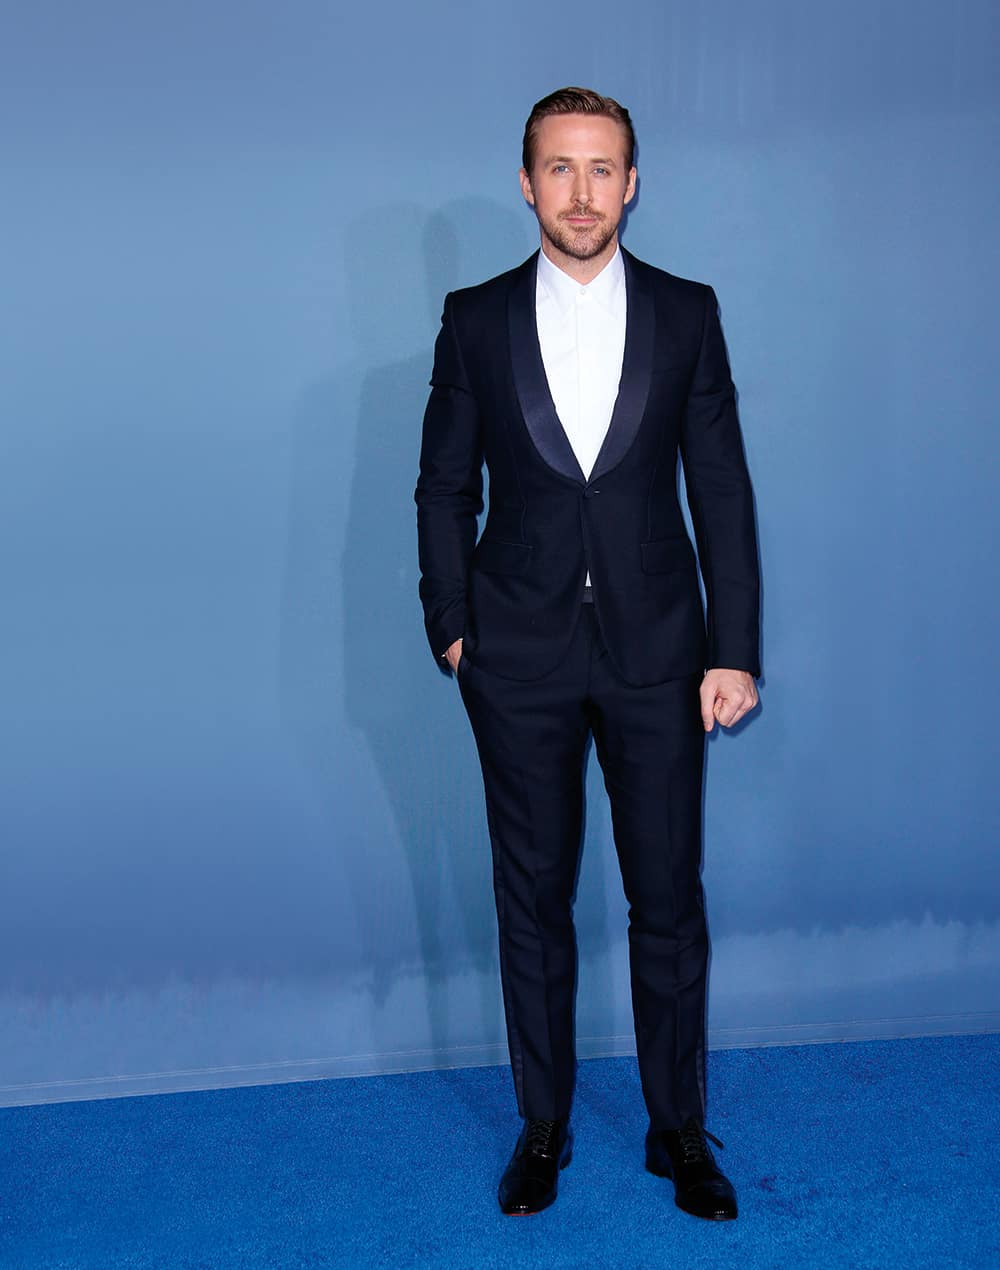 Styling inspiration from the new king of cool: Ryan Gosling ...